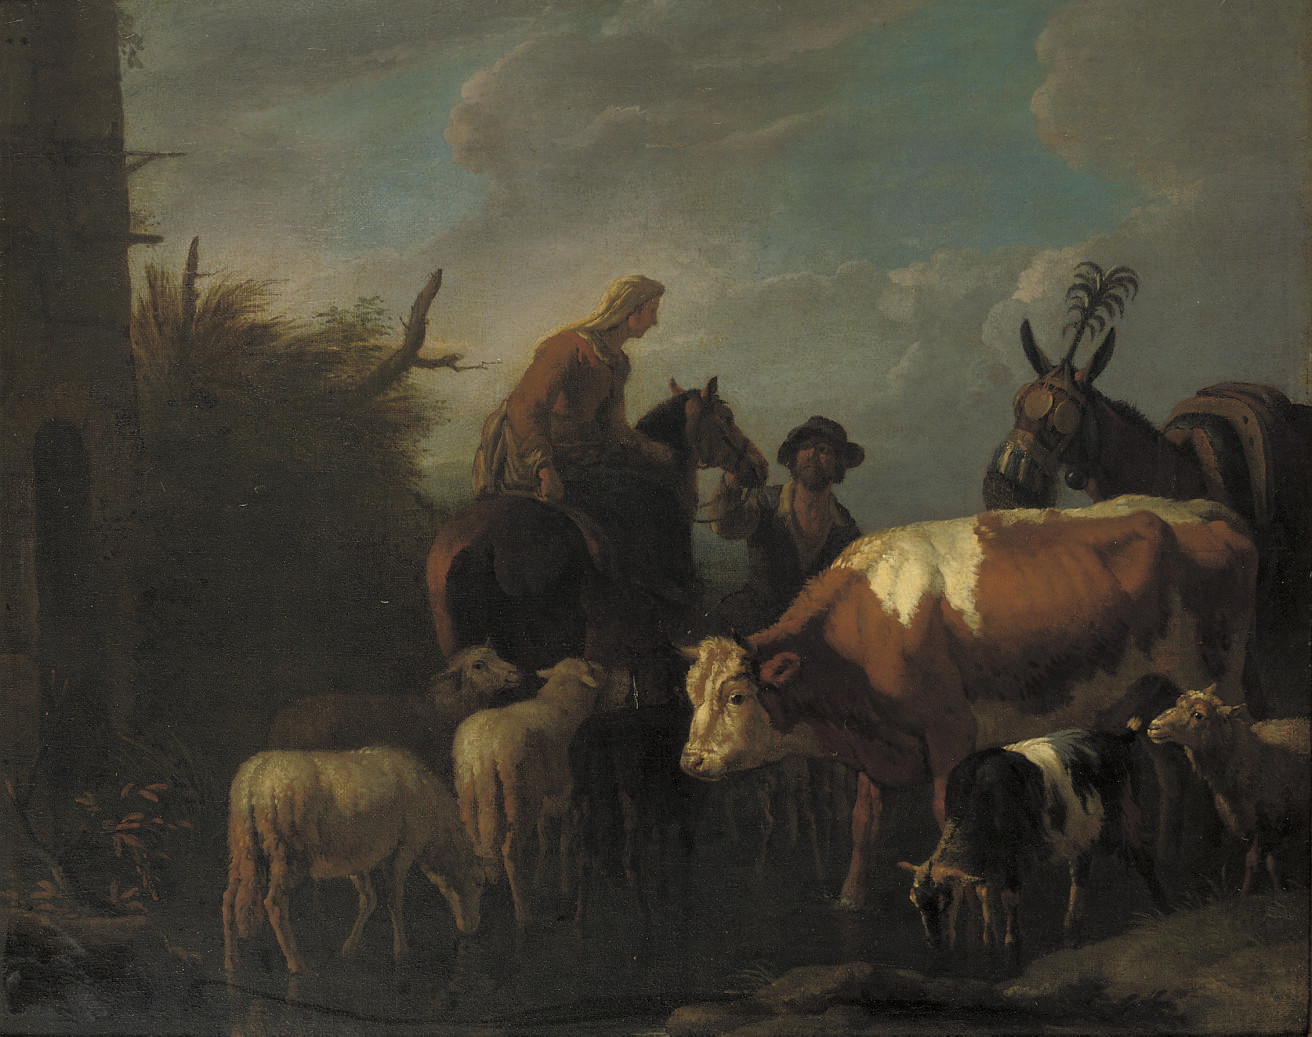 A peasant couple amongst their cattle and sheep